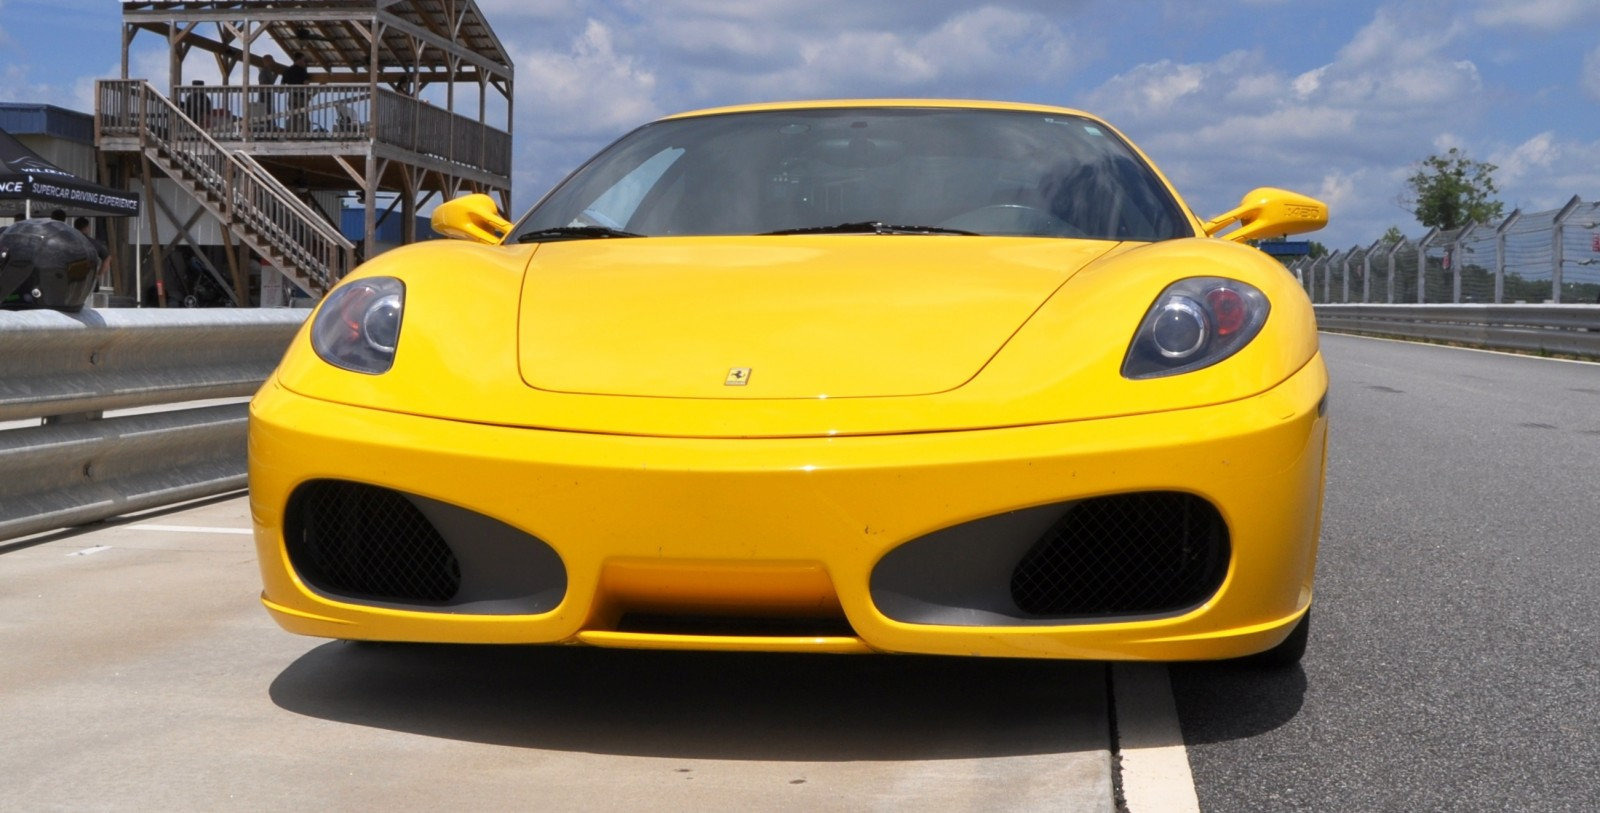 Beating the Supercar Paradox - 2007 Ferrari F430 at Velocity Motorsports Supercar Track Drive 25